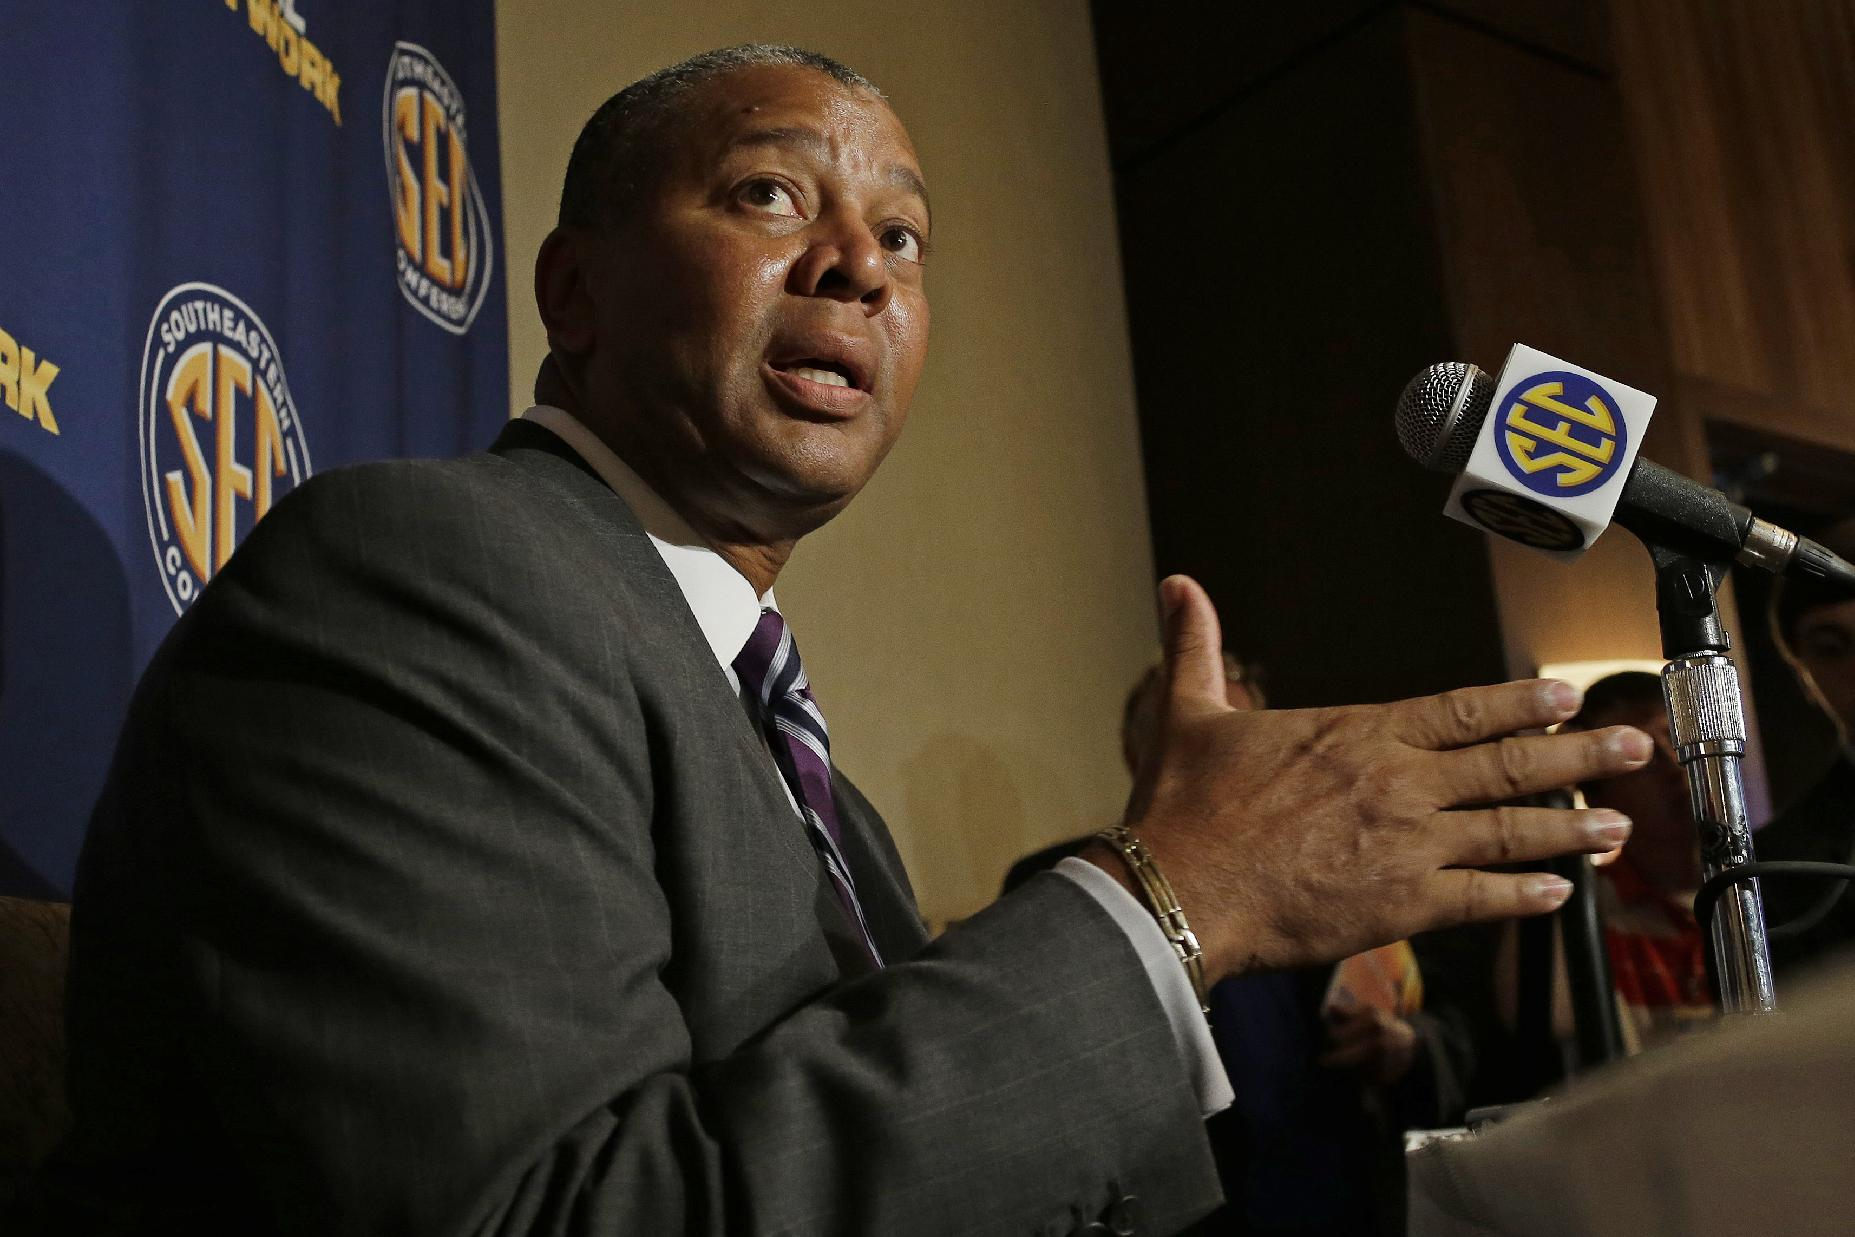 LSU coach Johnny Jones talks with reporters at the Southeastern Conference NCAA college basketball media day in Birmingham, Ala., Wednesday, Oct. 16, 2013